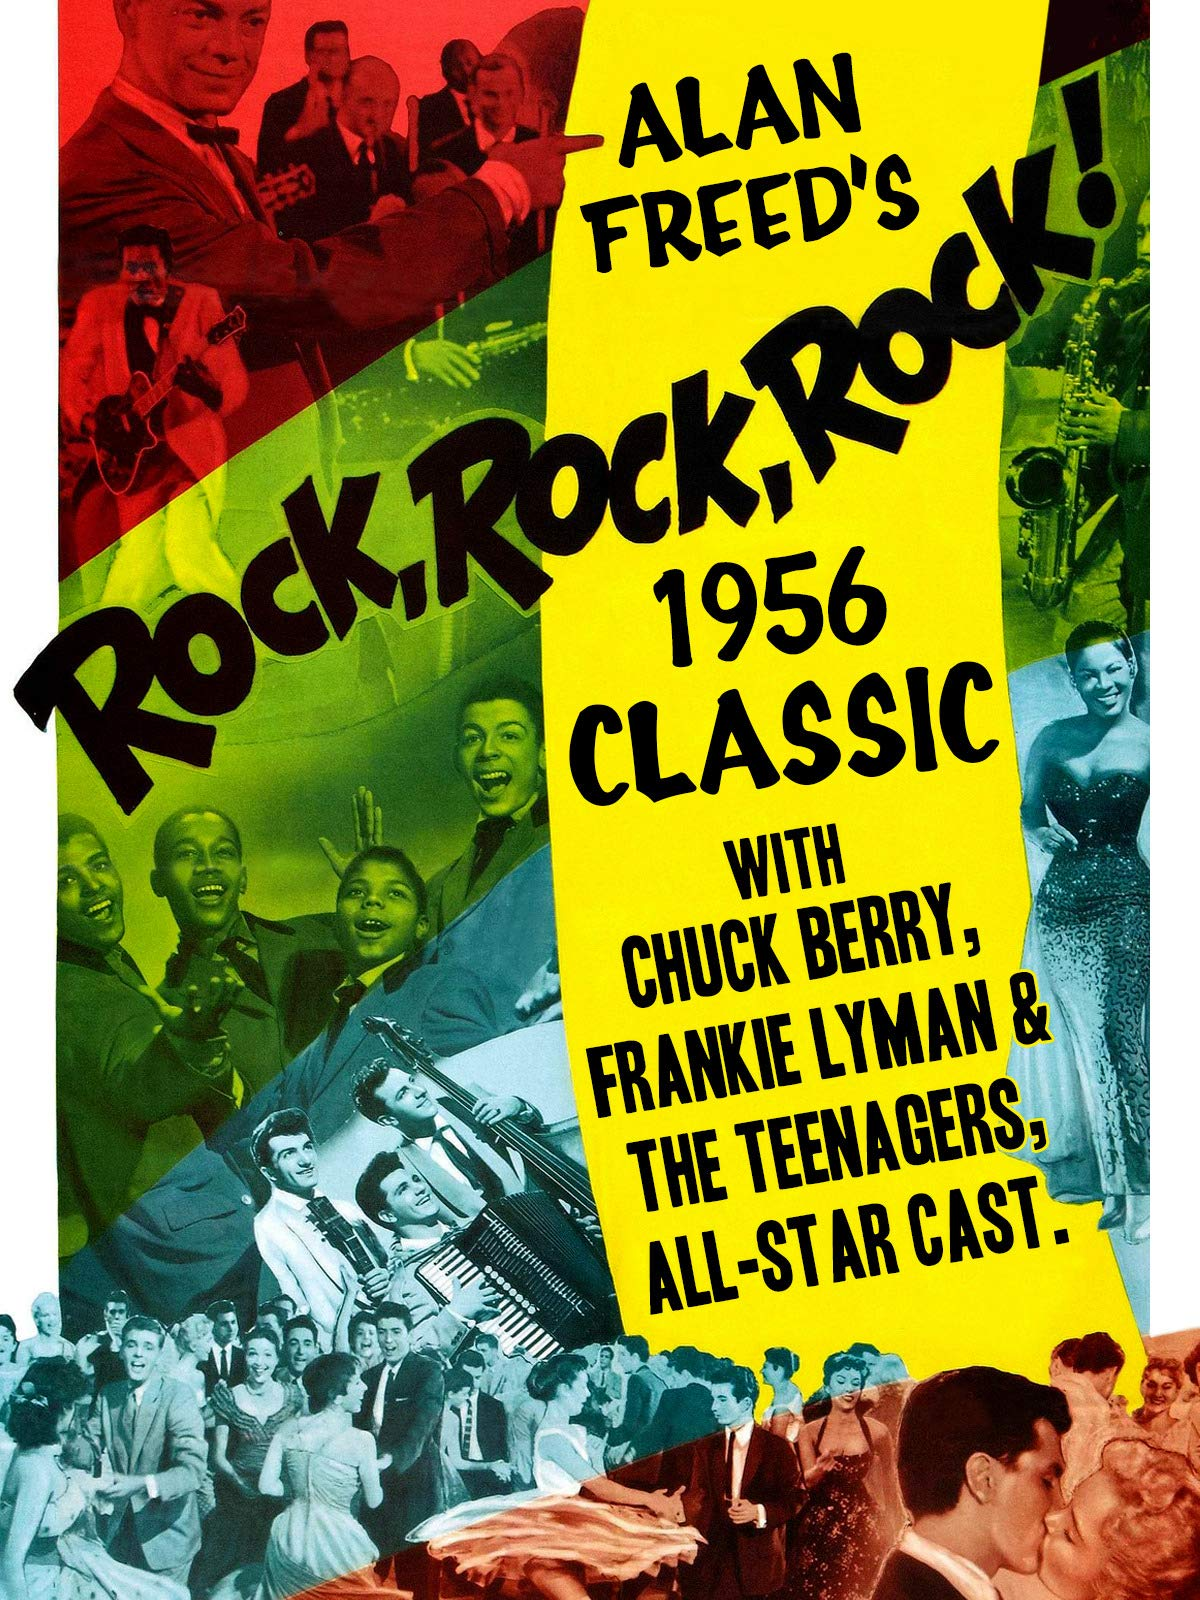 Alan Freed's Rock, Rock, Rock! - 1956 Classic With Chuck Berry, Frankie Lyman & The Teenagers, All-Star Cast